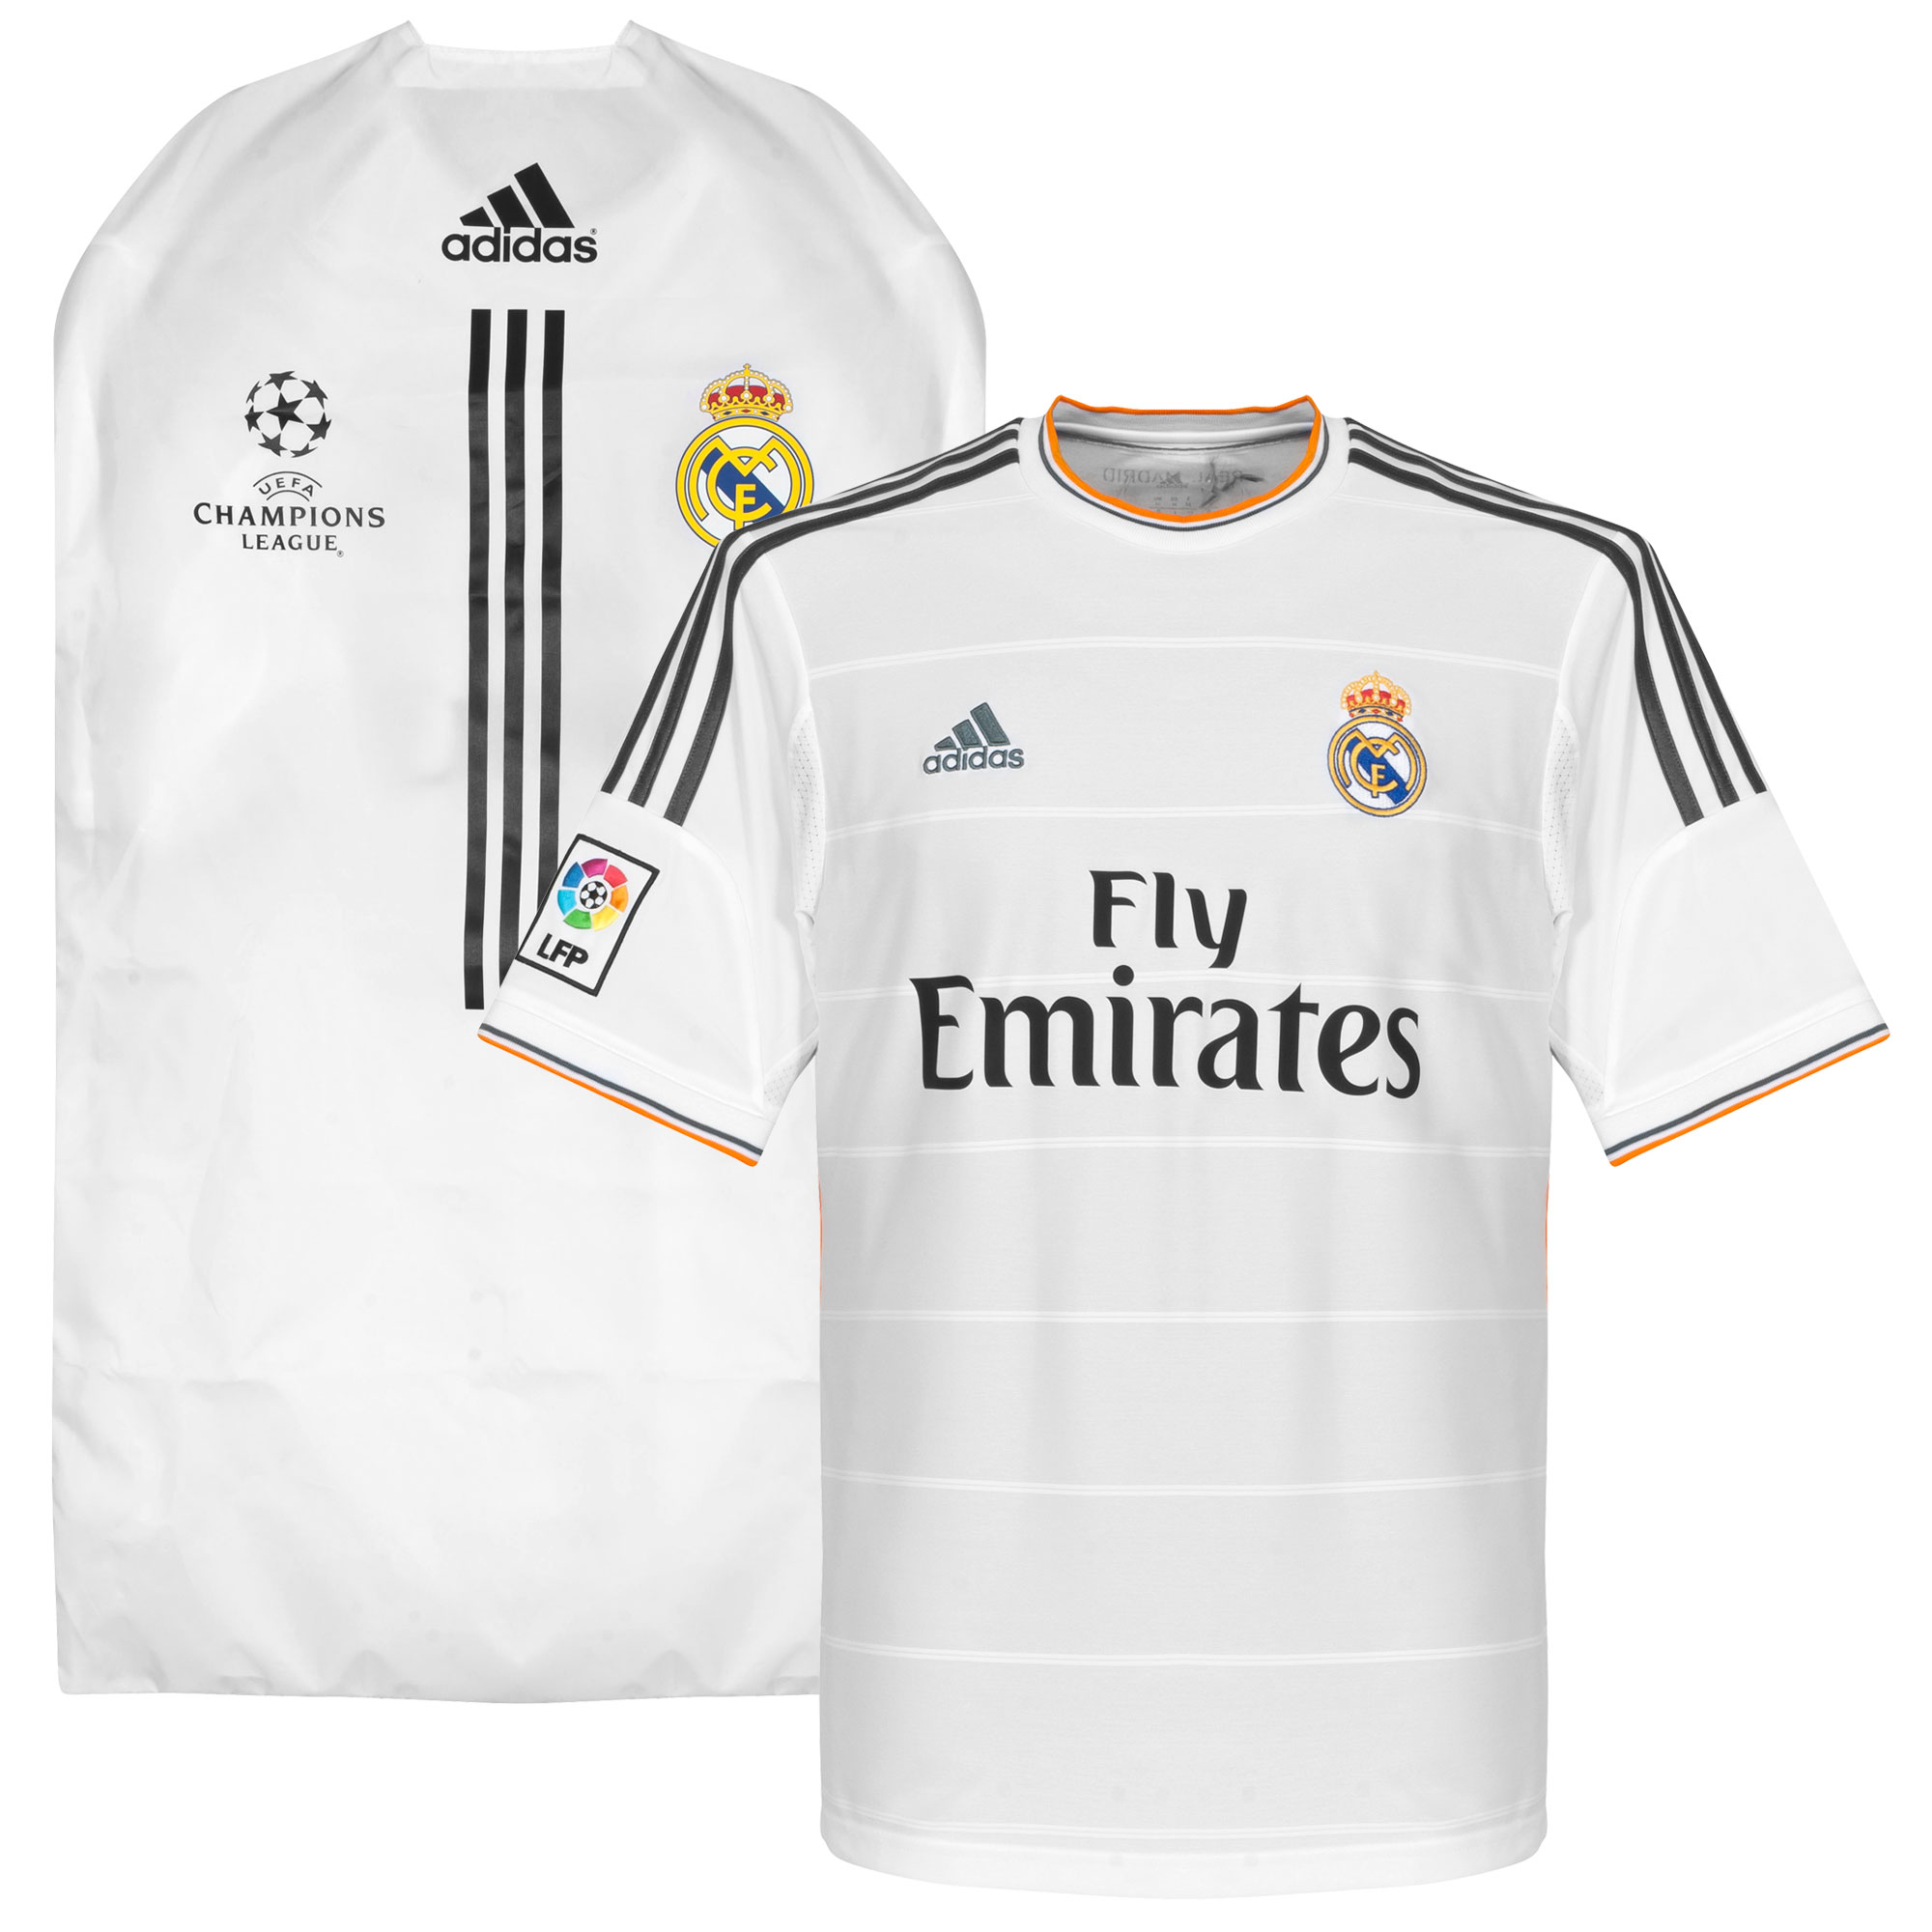 adidas Real Madrid Home Shirt 2013-2014 (including Shirt Cover)